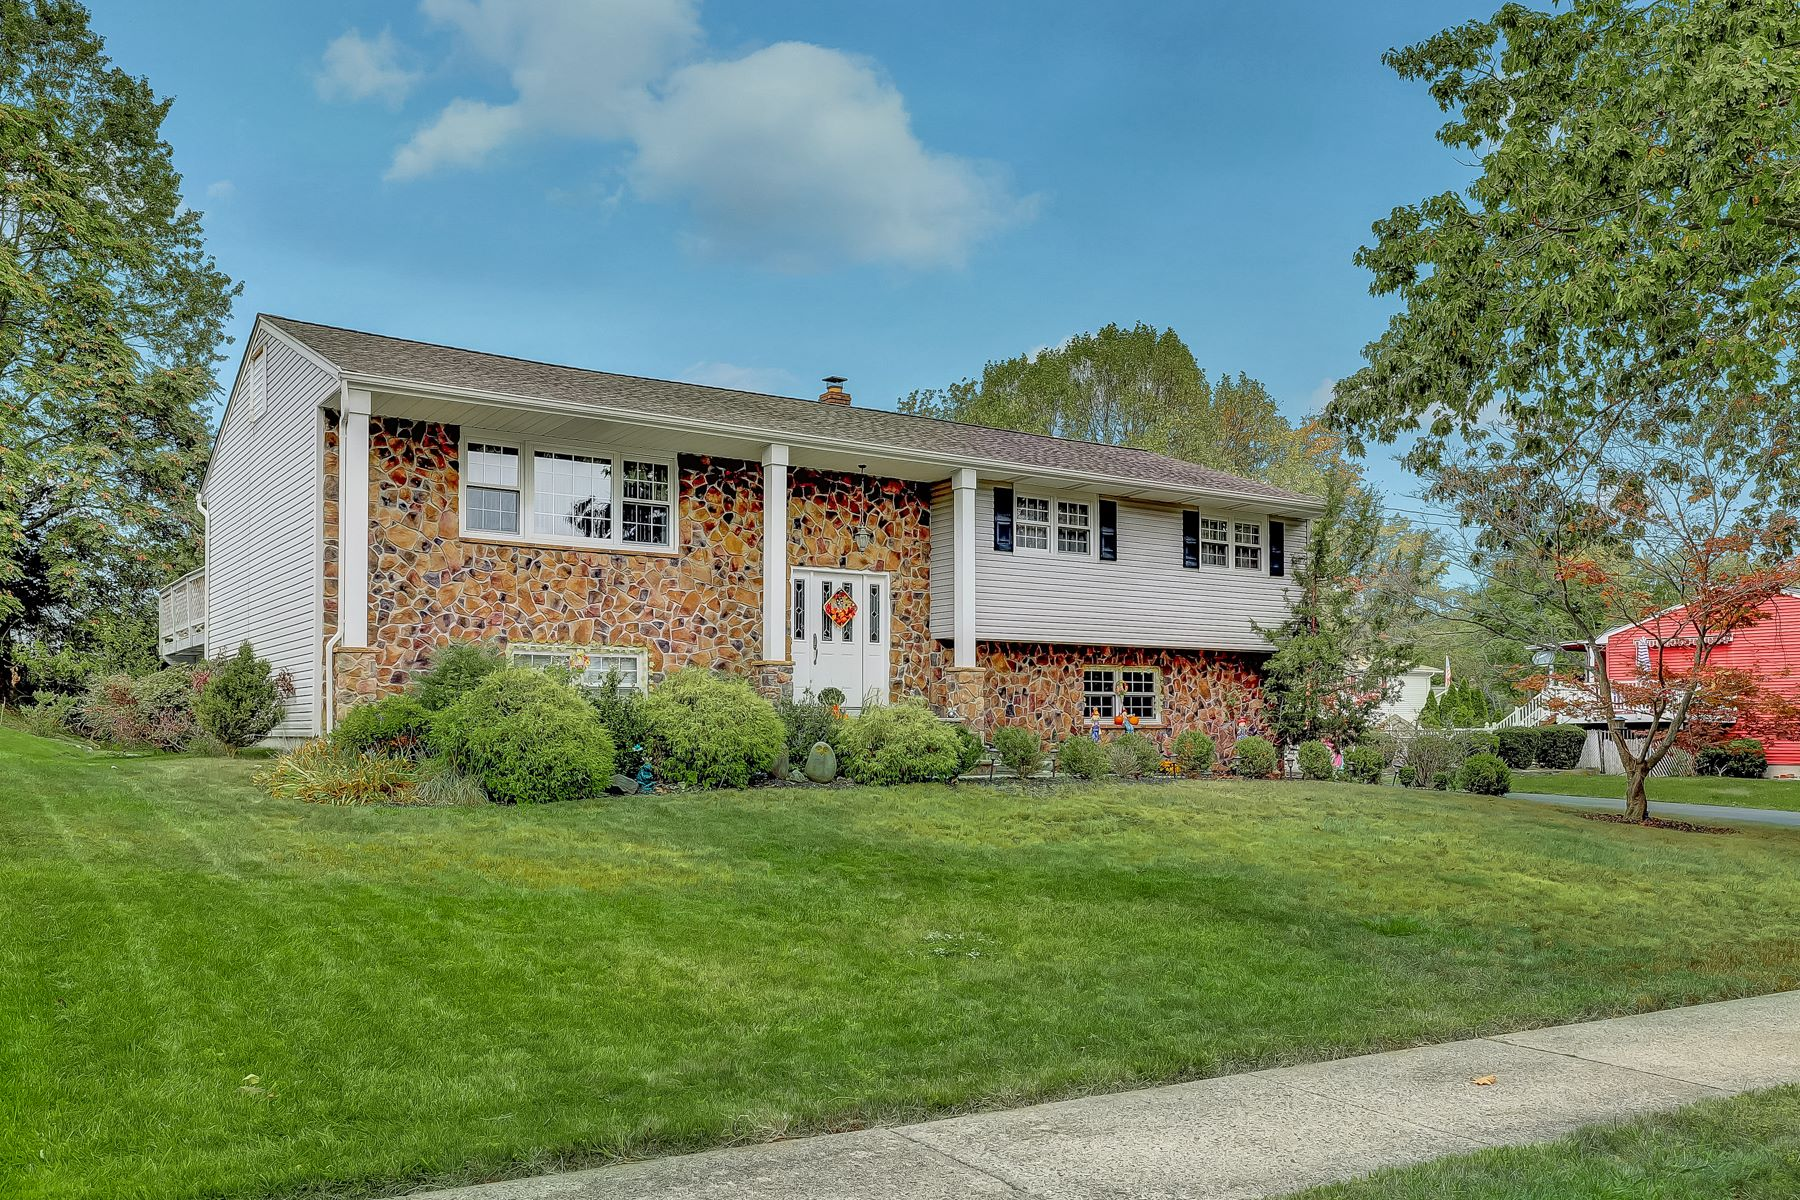 Single Family Homes for Active at Fantastic Bi-Level 54 Herfort Drive Wayne, New Jersey 07470 United States